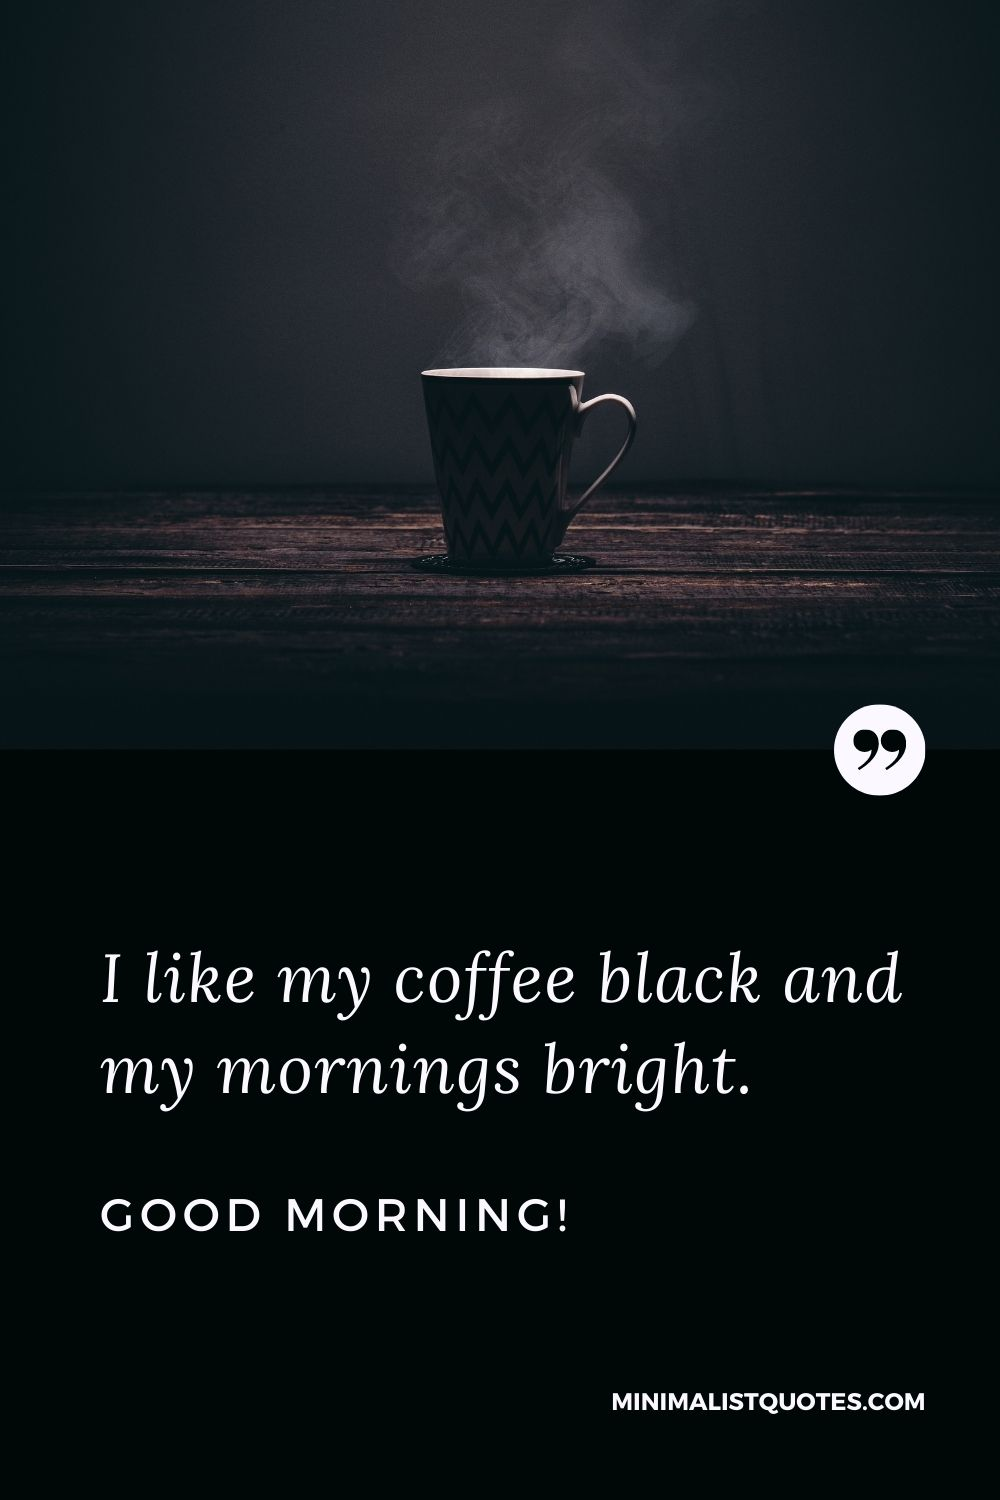 Morning Quote, Wish & Message: I like my coffee black and my mornings bright. Good Morning!